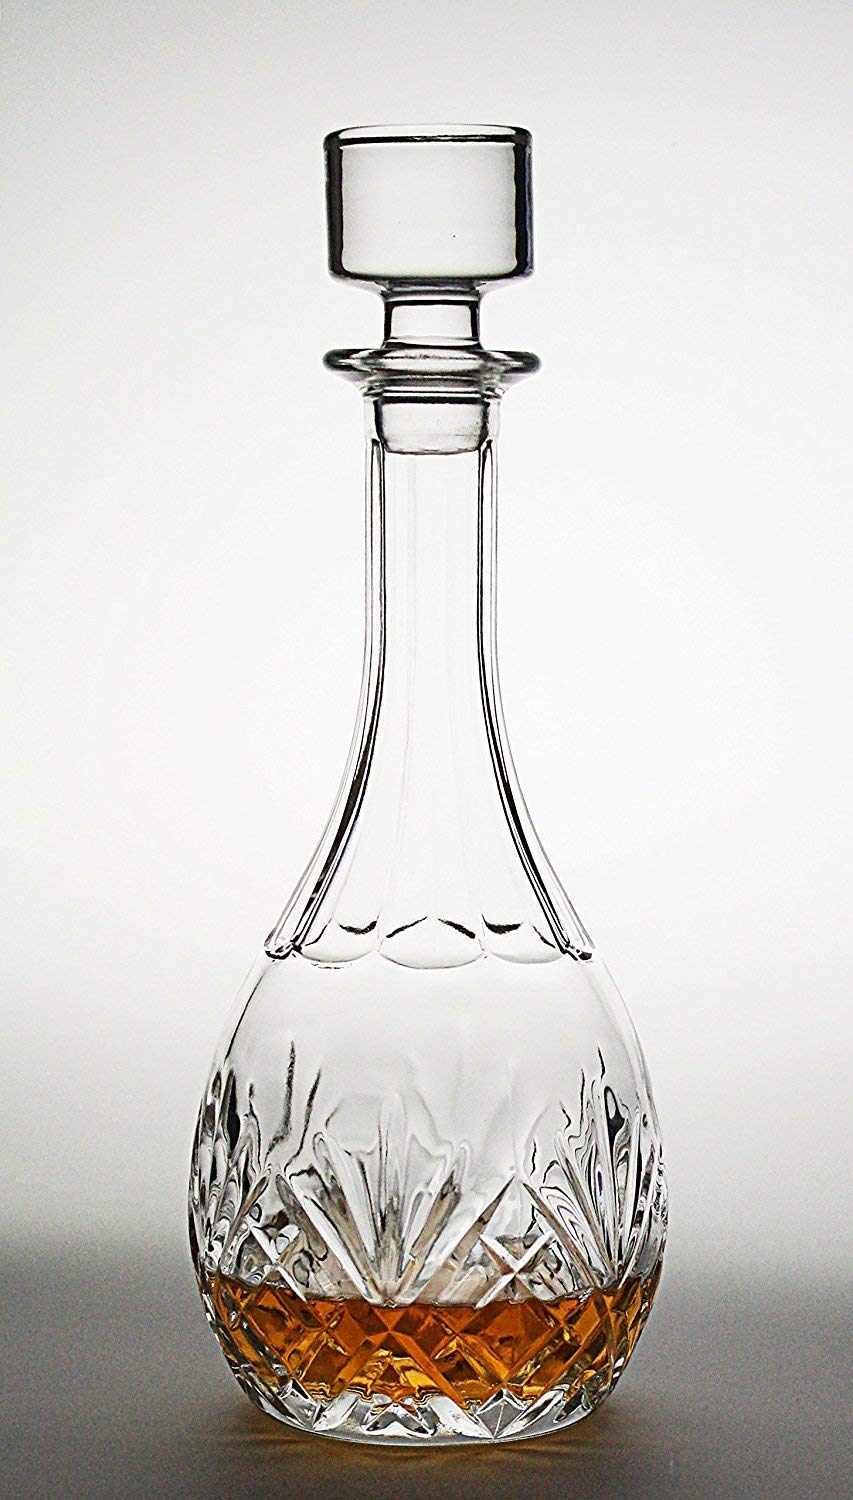 Red Wine Carafe Bezrat Wine Decanter Wine Gift 100/% Hand Blown Lead-free Crystal Glass Wine Accessories